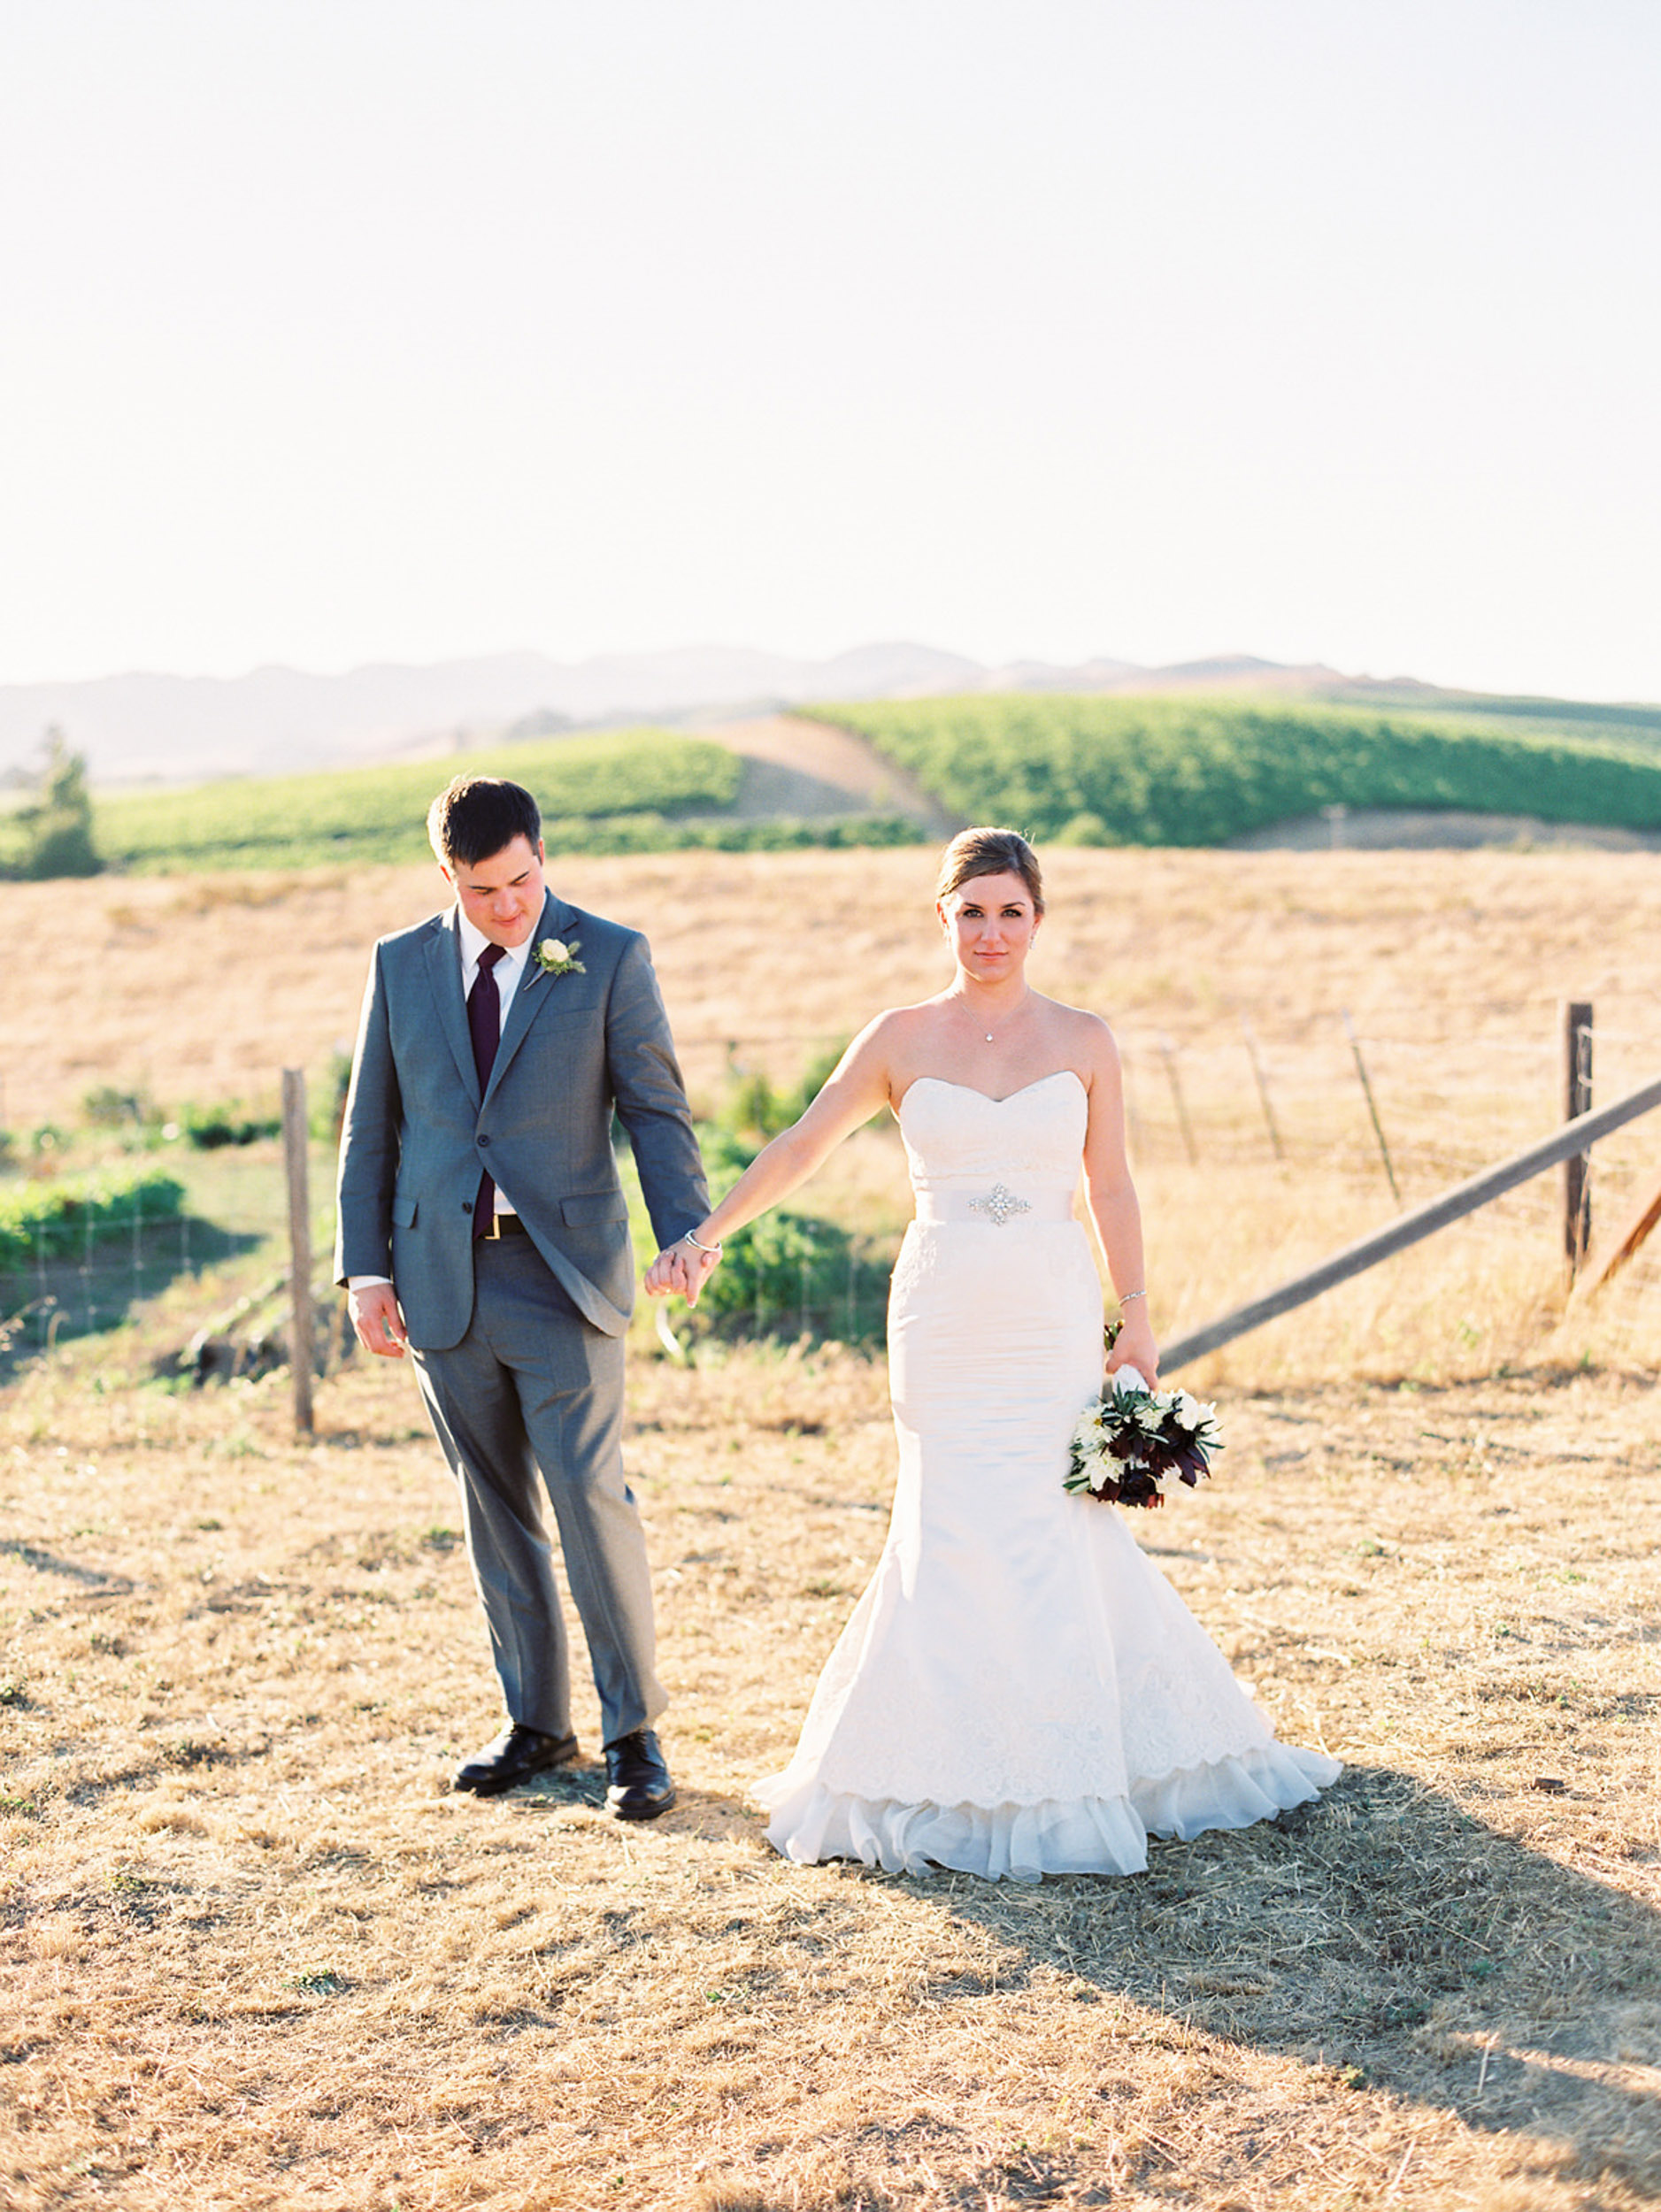 Carneros Resort Wedding Photographer 0079 - Carneros Resort